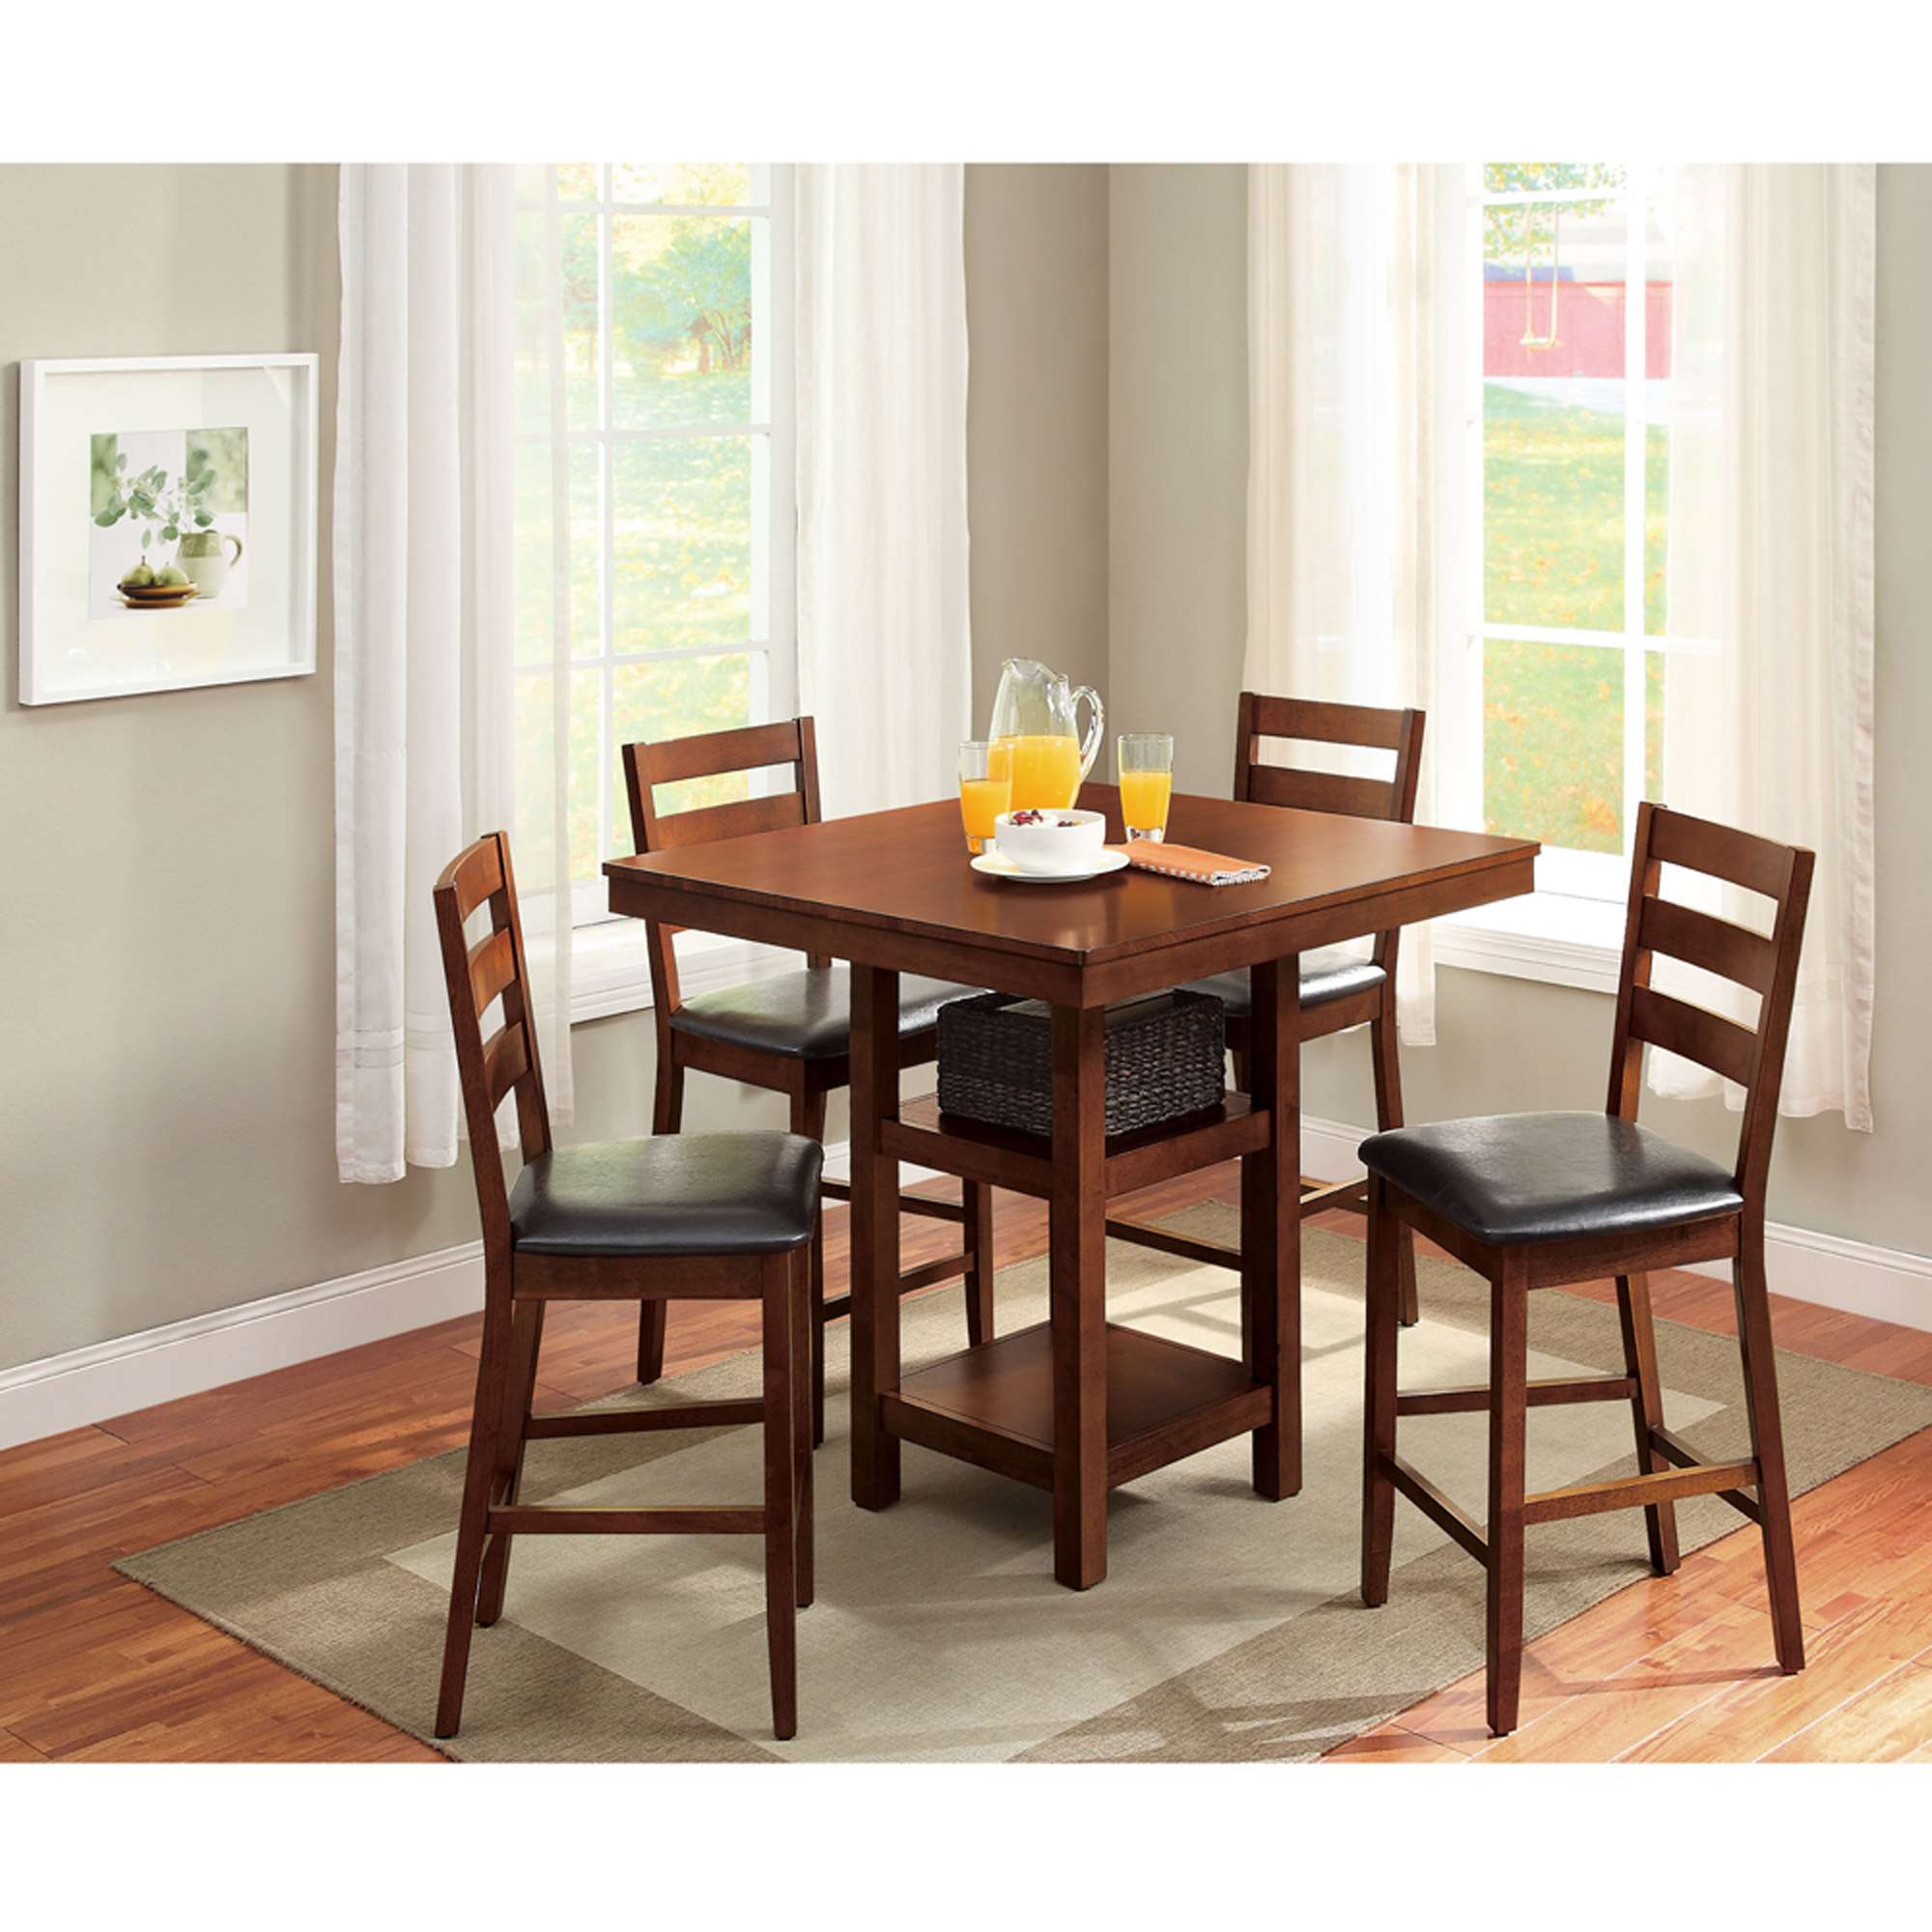 Better Homes Gardens Dalton Park 5 Piece Counter Height Dining Set Walmart Com Walmart Com